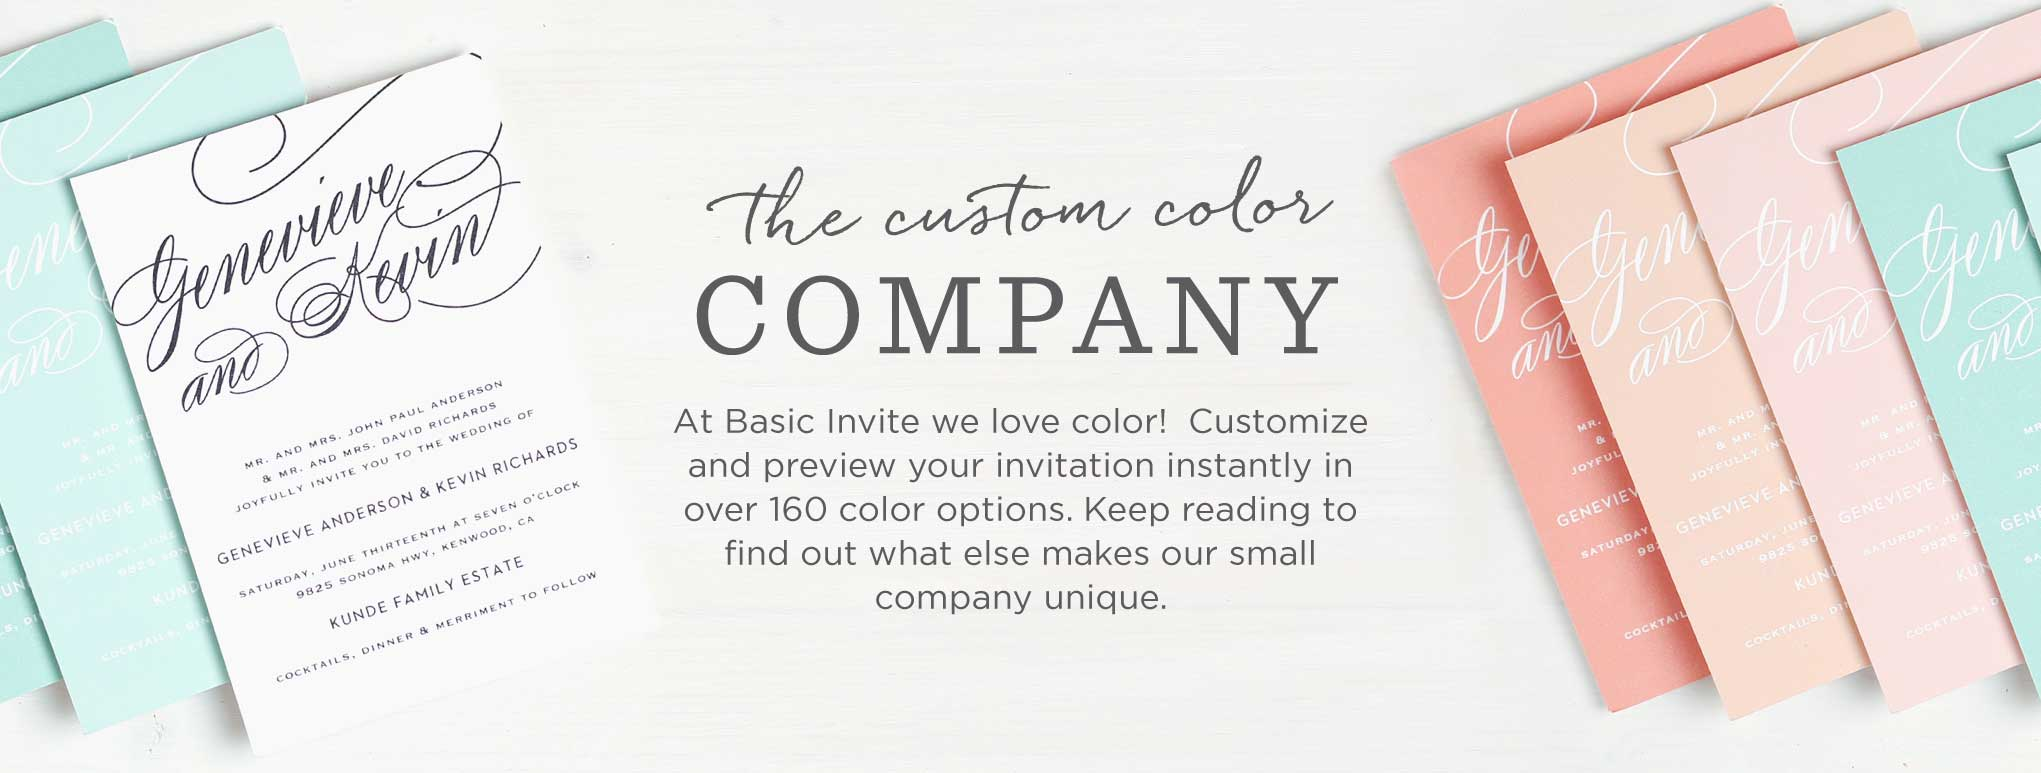 About Basic Invite